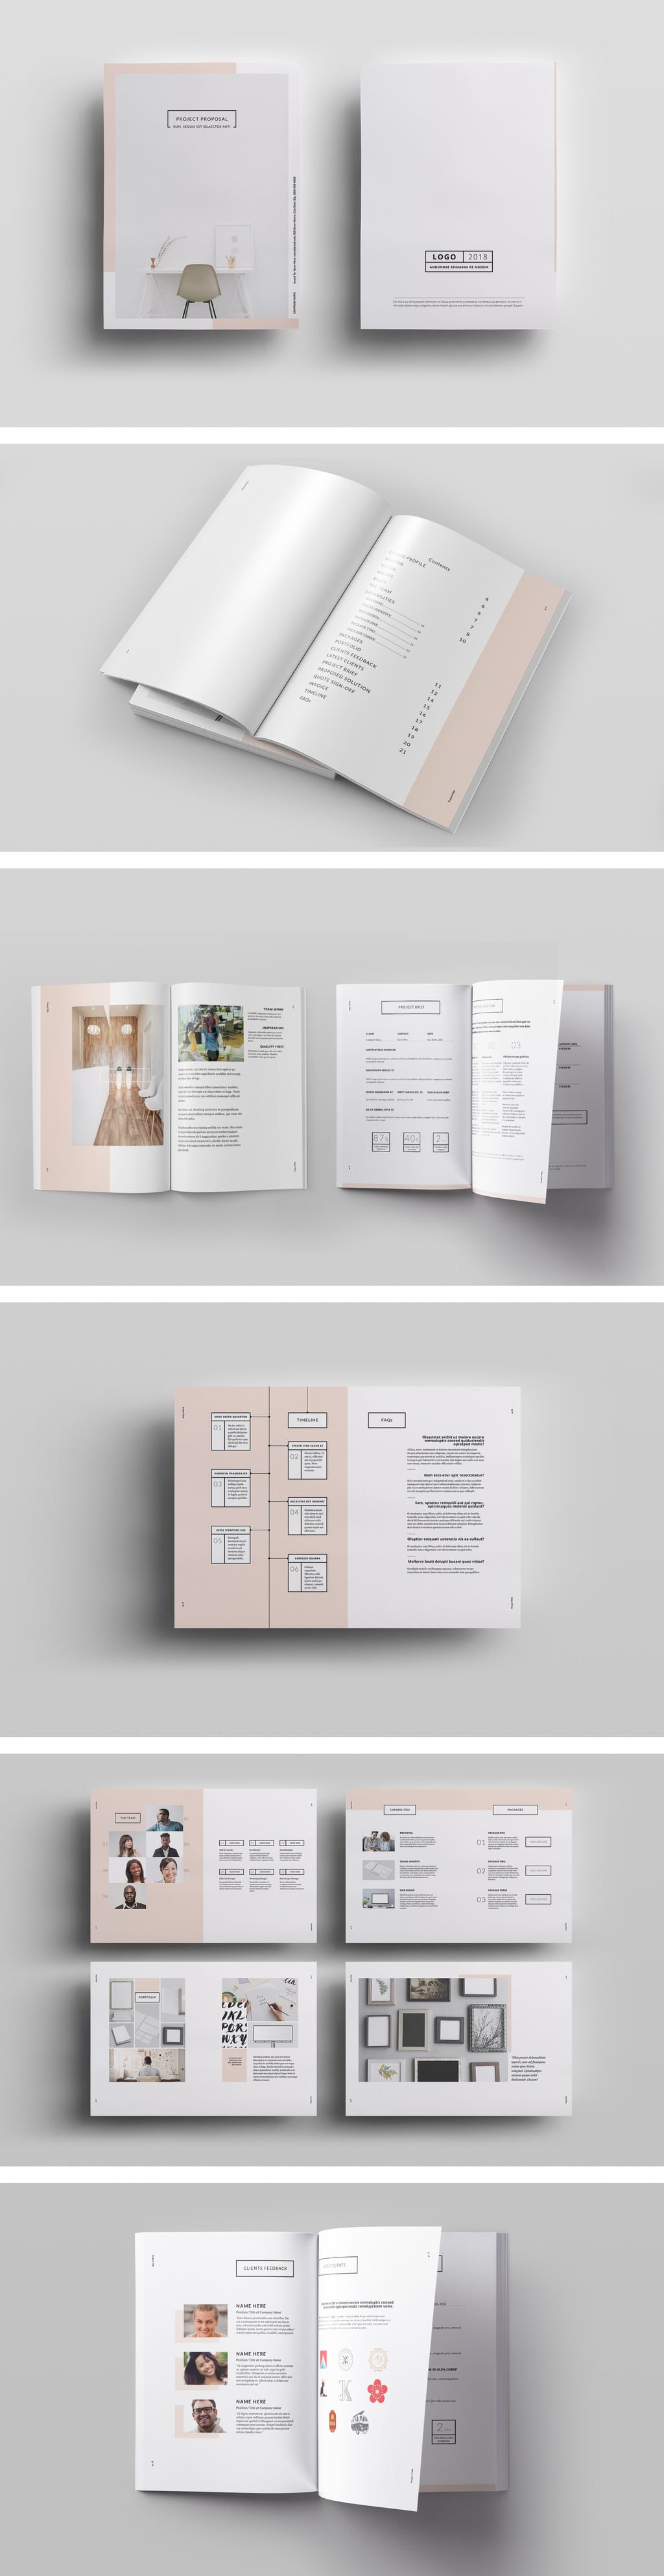 Sophisticated Free InDesign Template